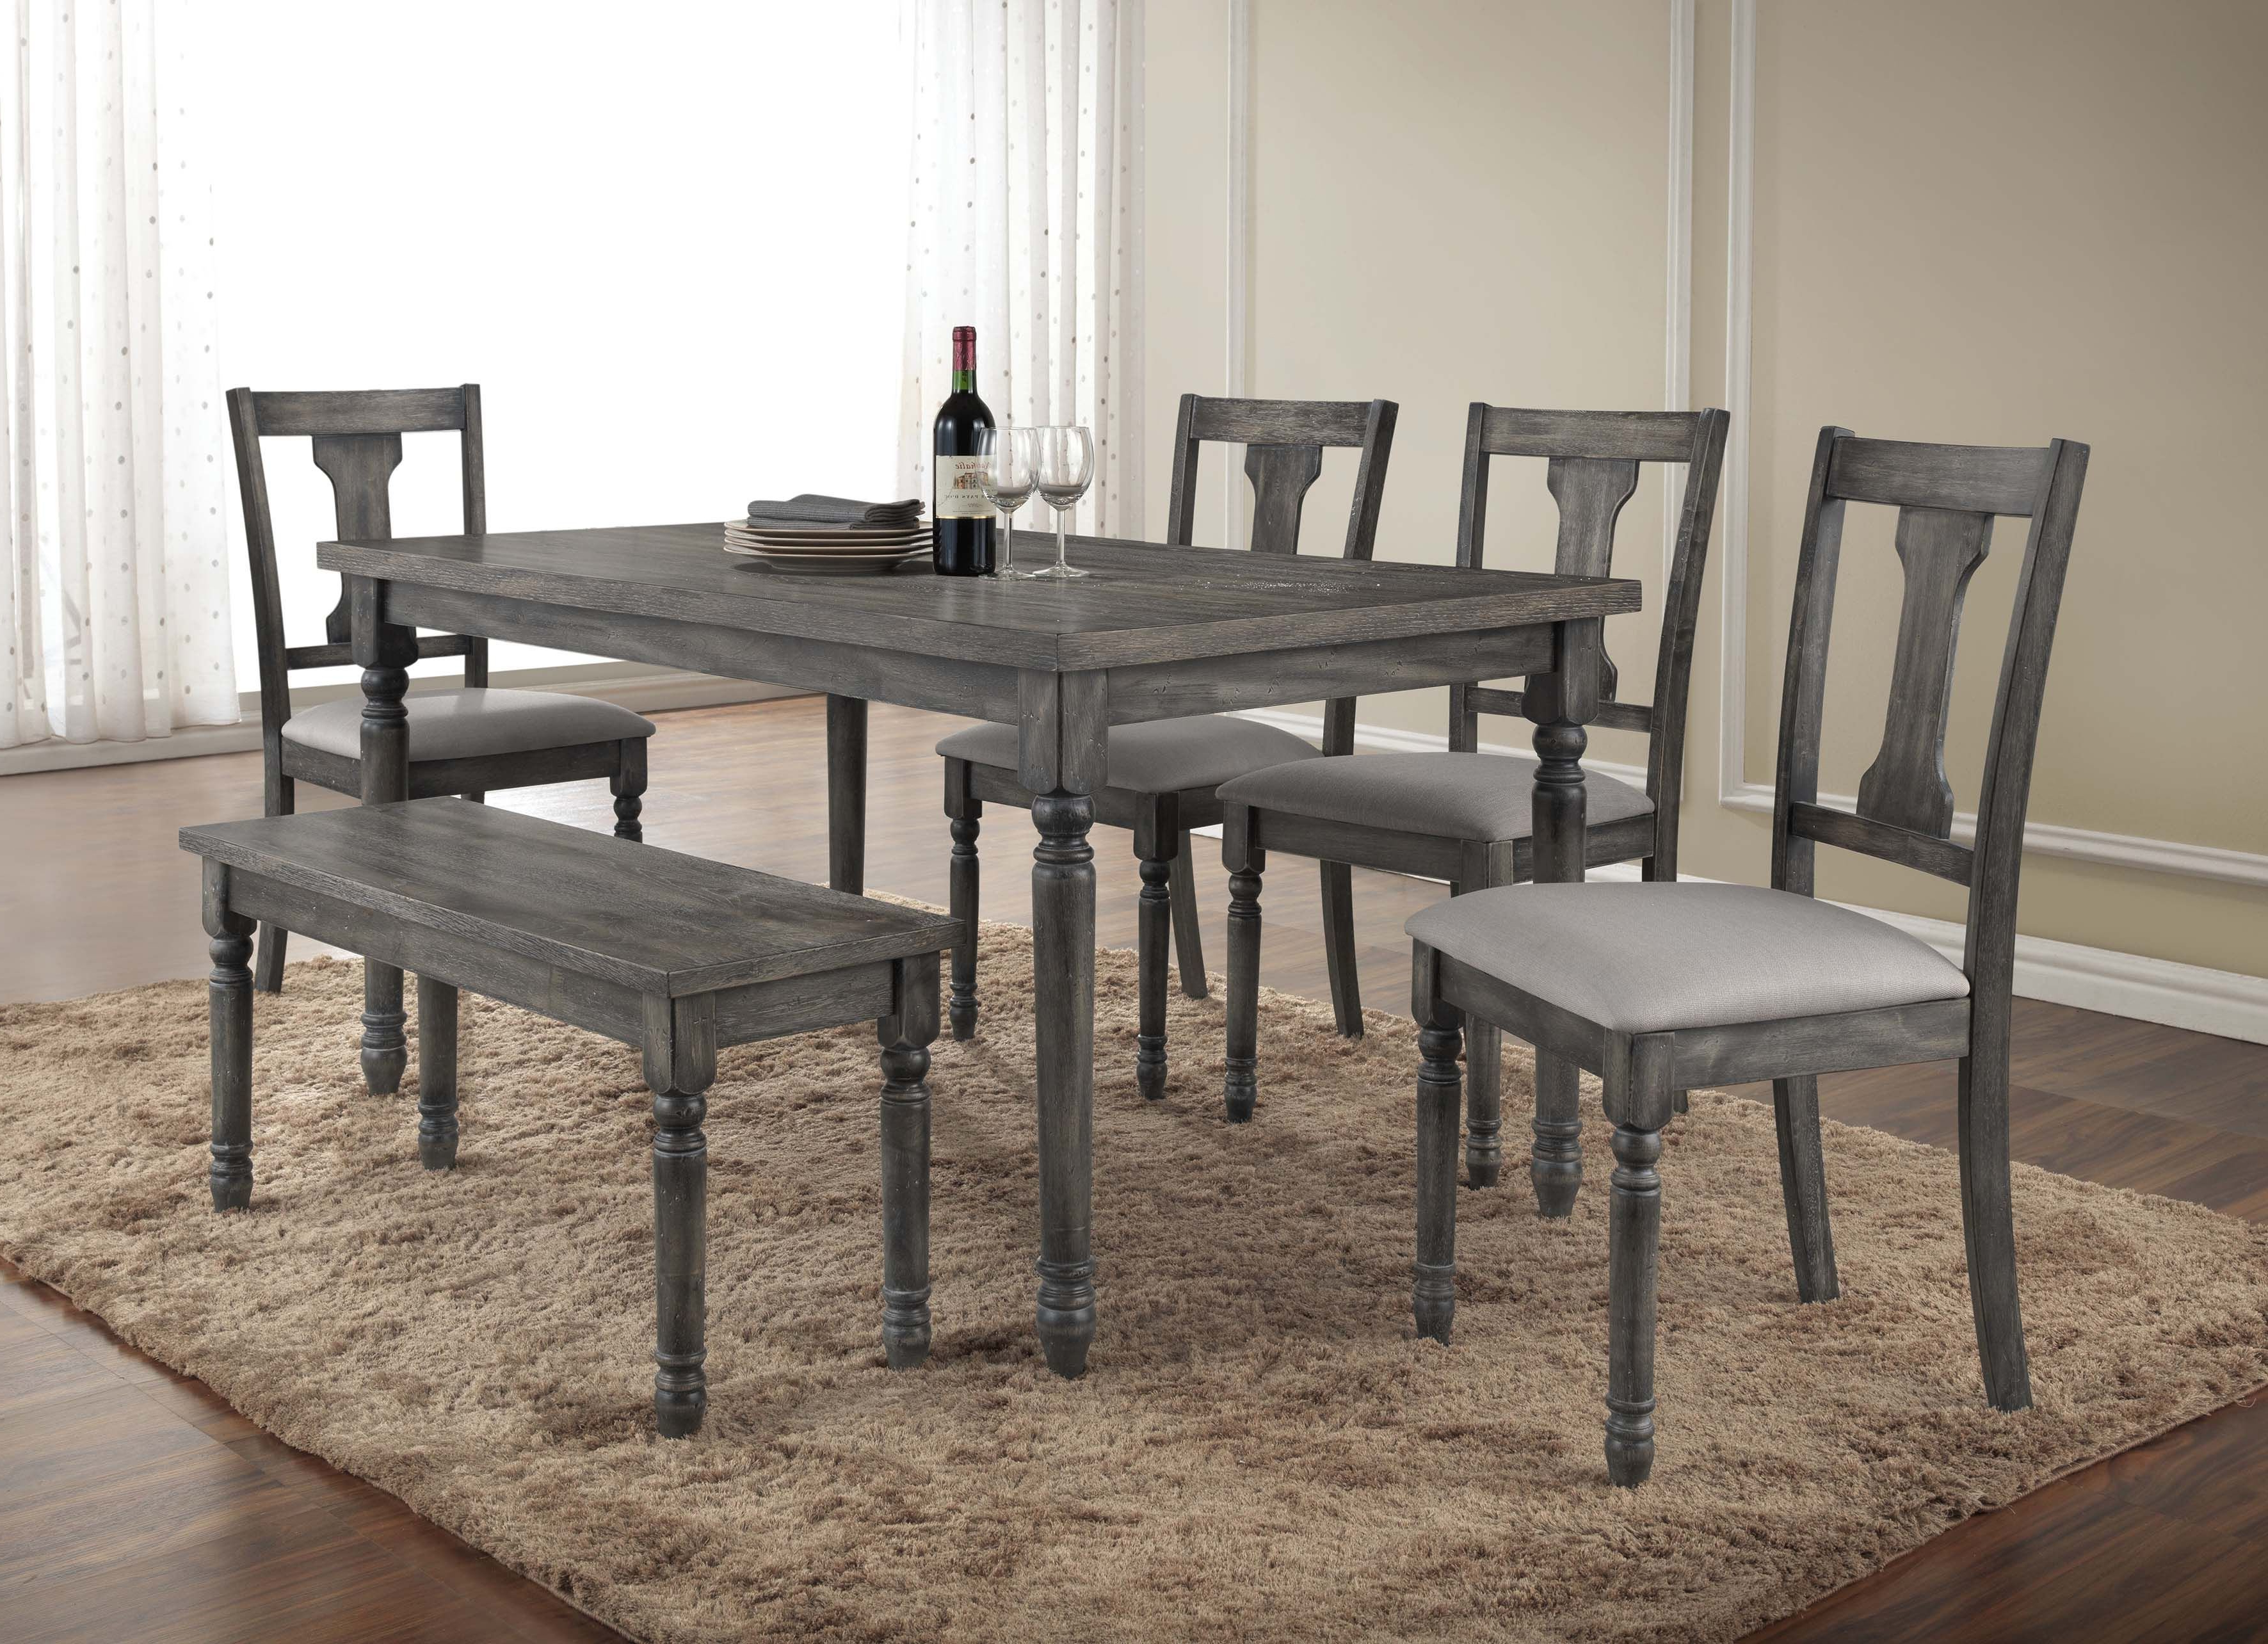 Farmhouse & Rustic 6 Piece Dining Sets (Gallery 6 of 20)